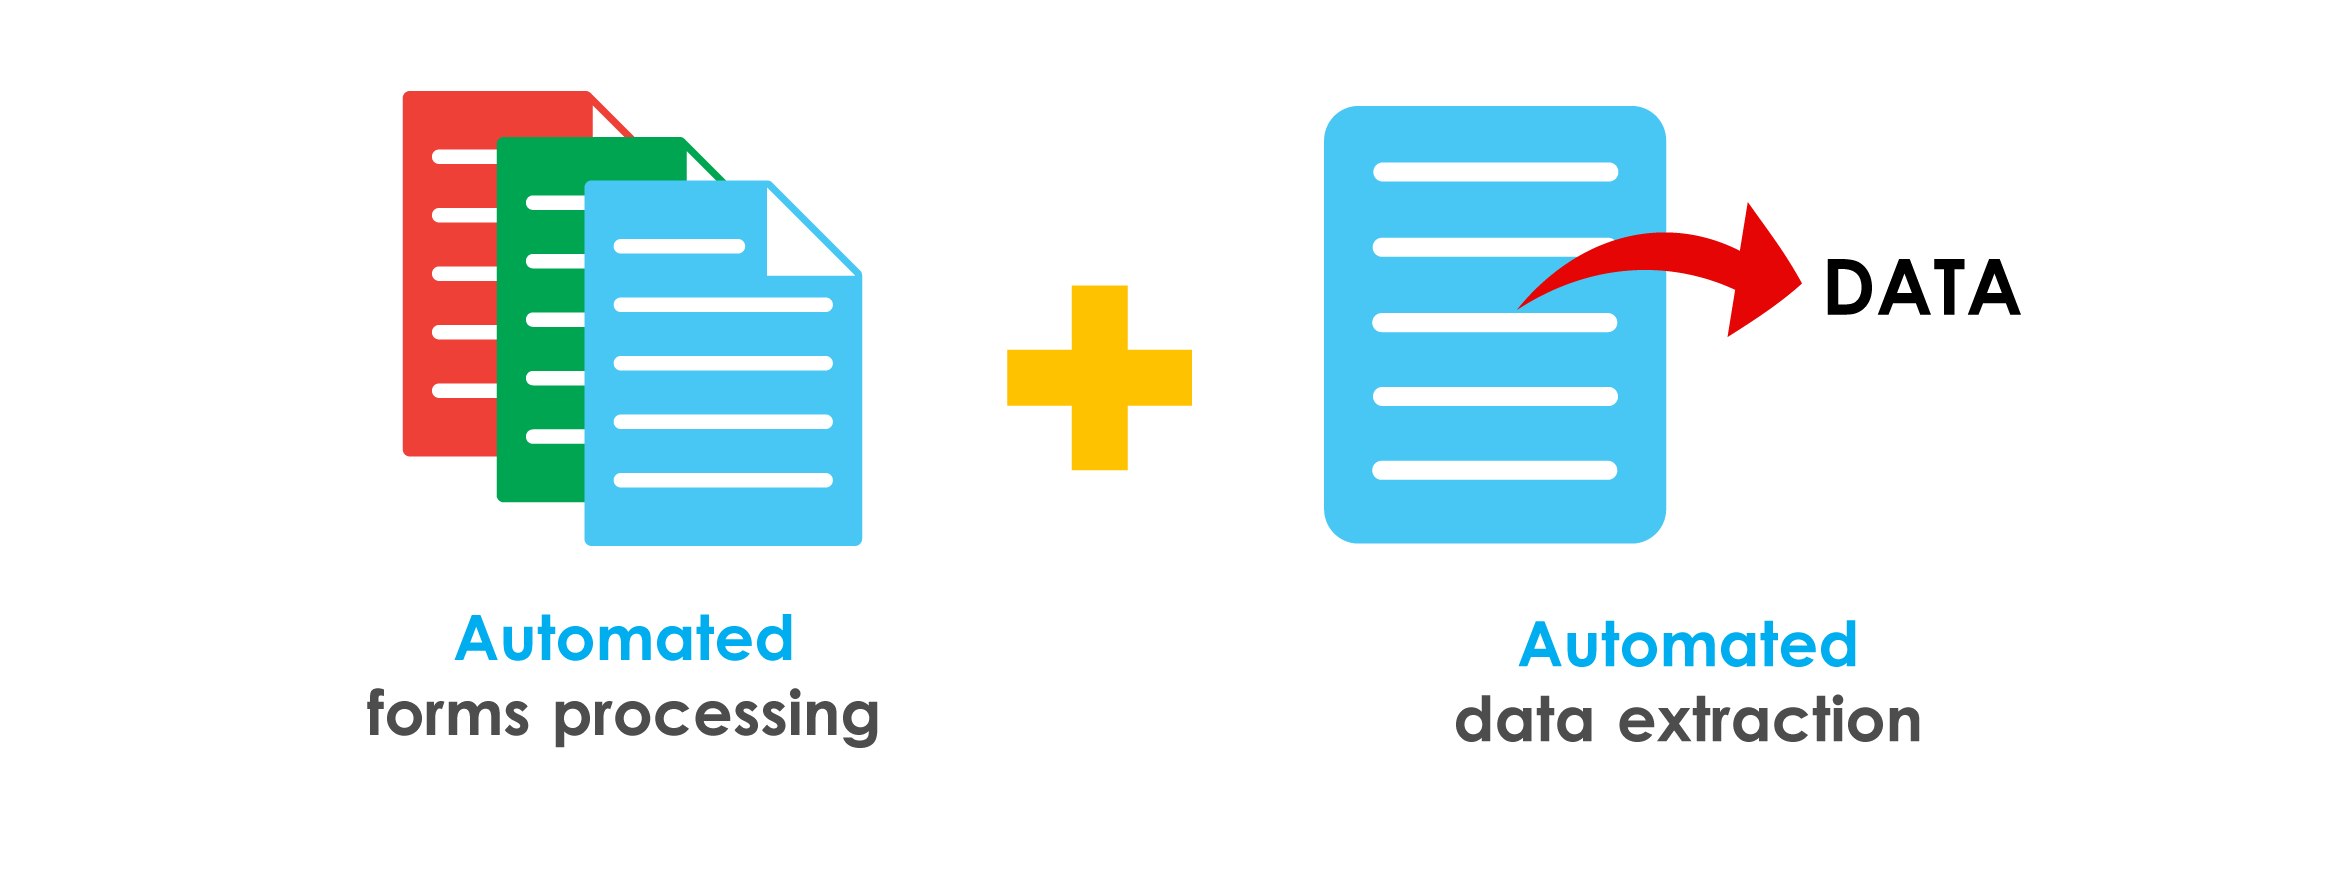 Automated forms processing and data extraction